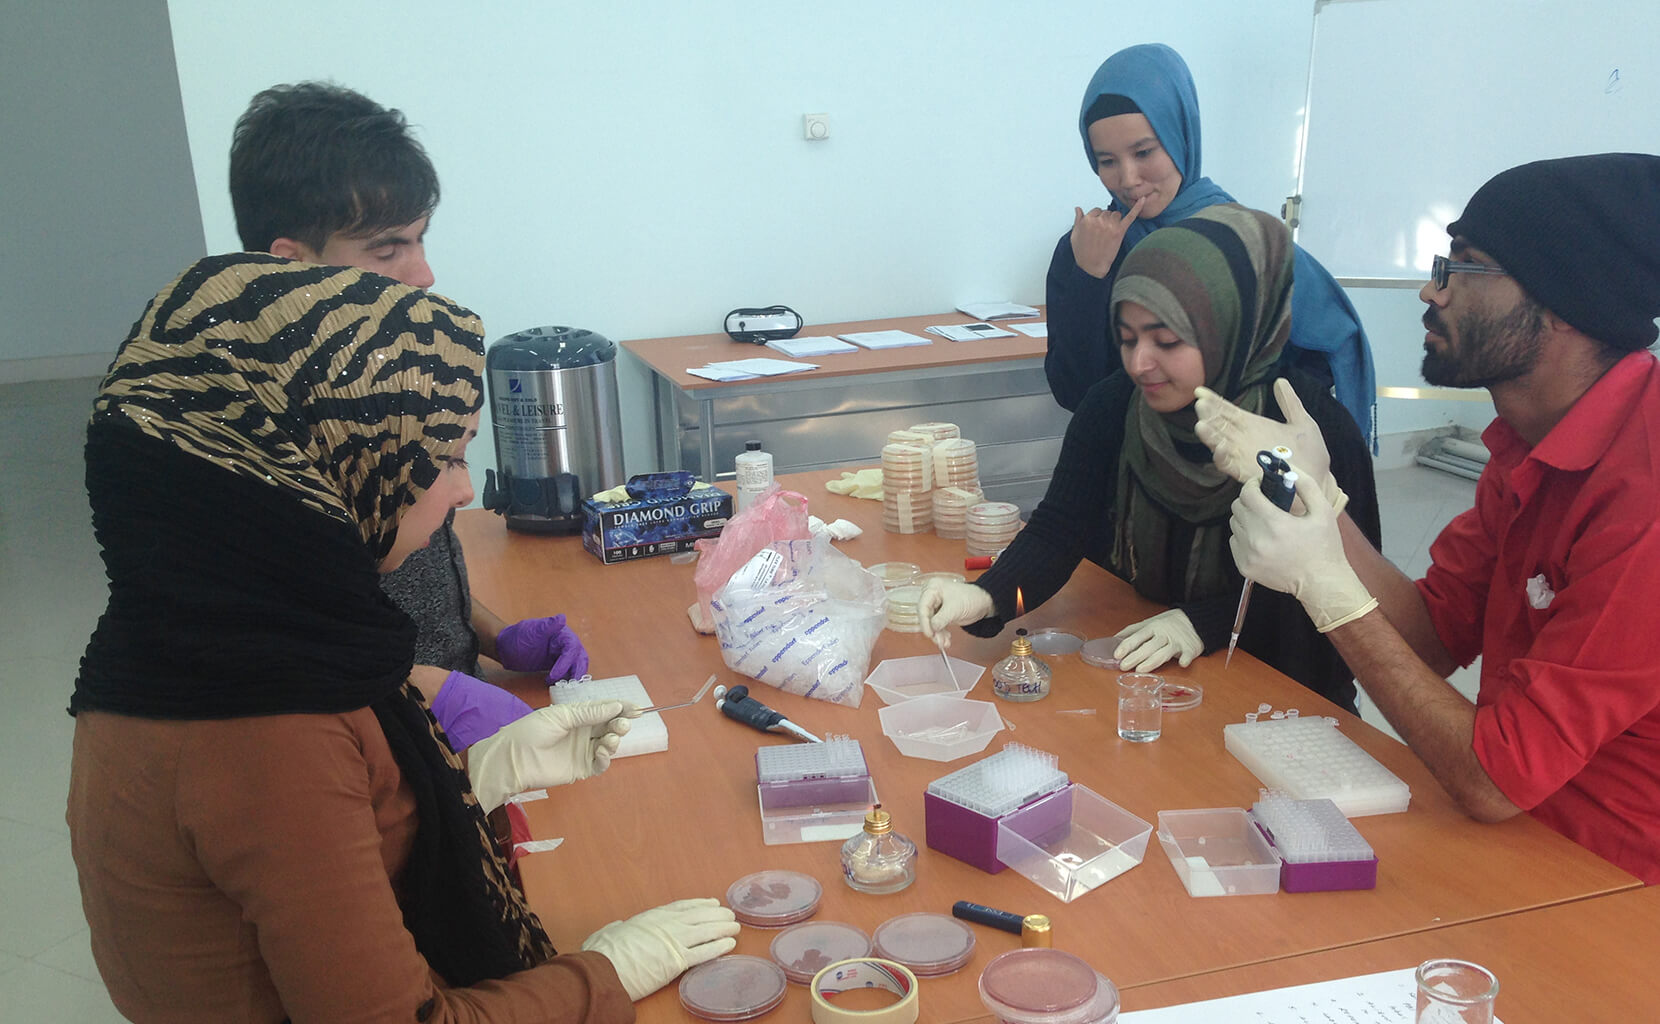 Herat University students in the food technology program plate milk to identify bacteria present in the samples.